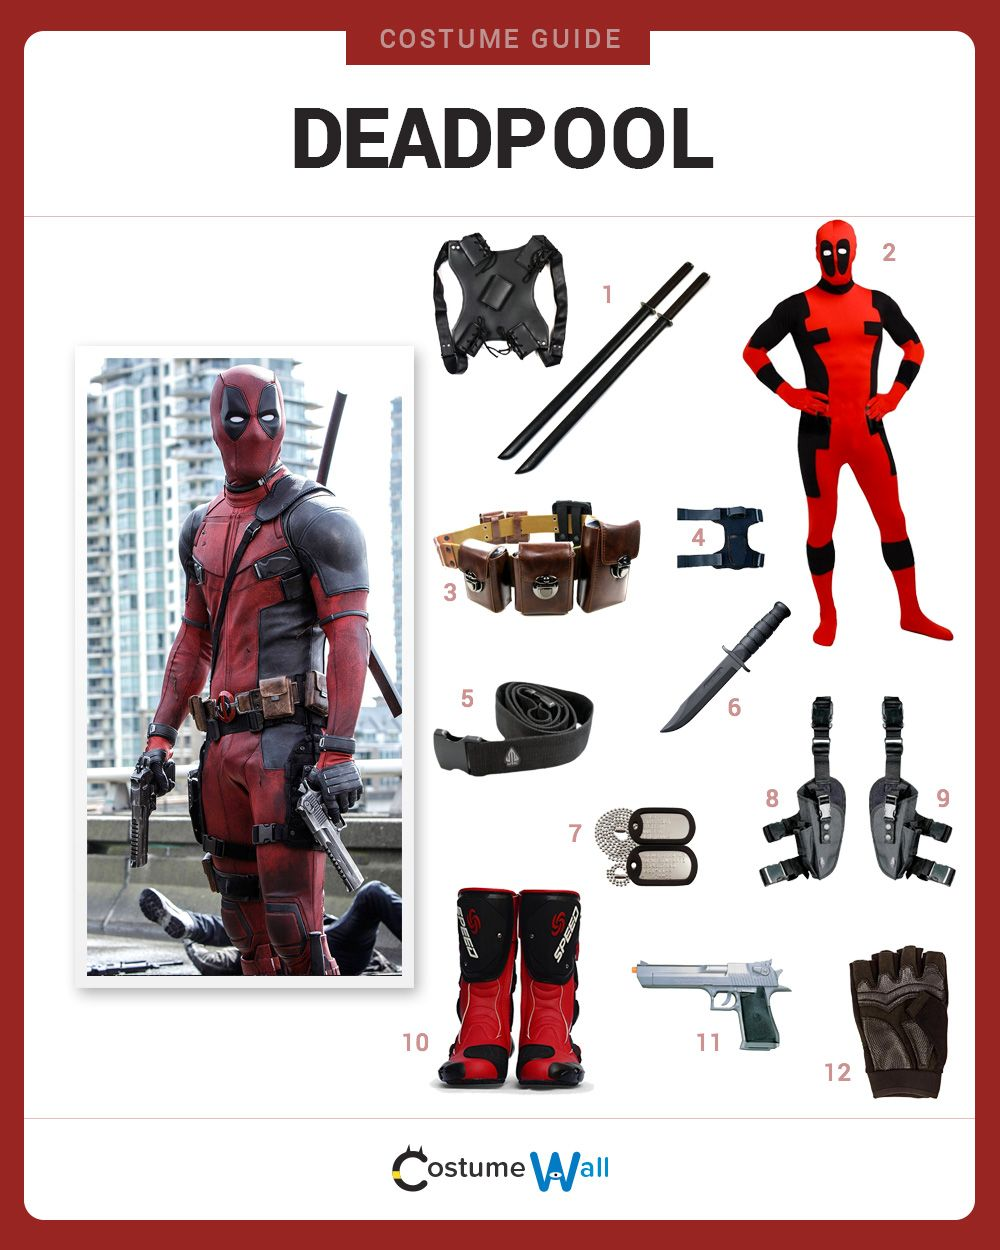 Dress like deadpool pinterest upcoming marvel movies wade dress like deadpool from the upcoming marvel movie get cosplay inspiration and and costume ideas from wade wilson aka the merc with the mouth solutioingenieria Choice Image